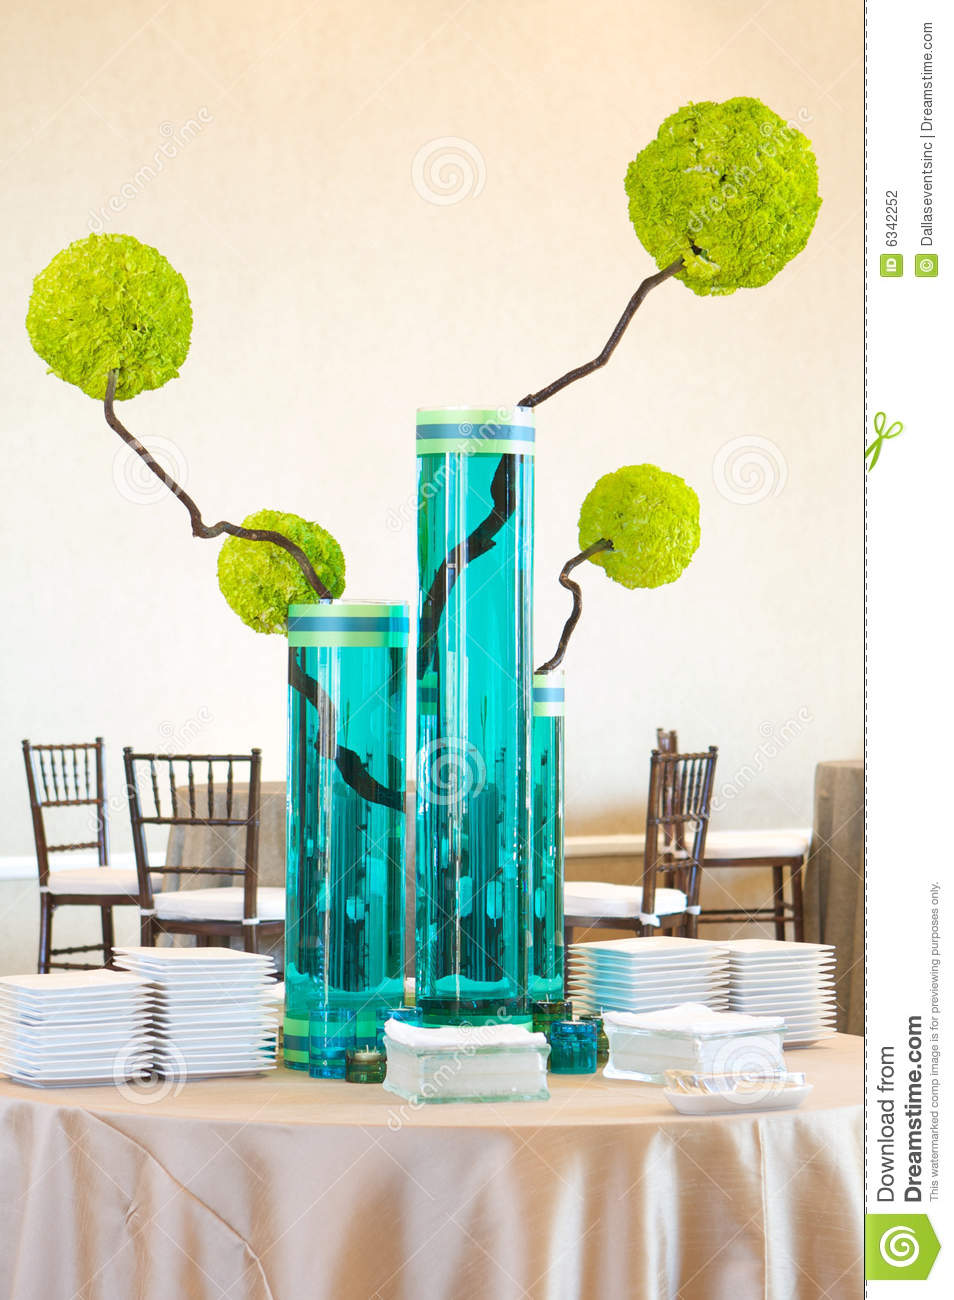 Tischgedeck Clipart Modern Fancy Table Setting Stock Photo Image Of Events 4